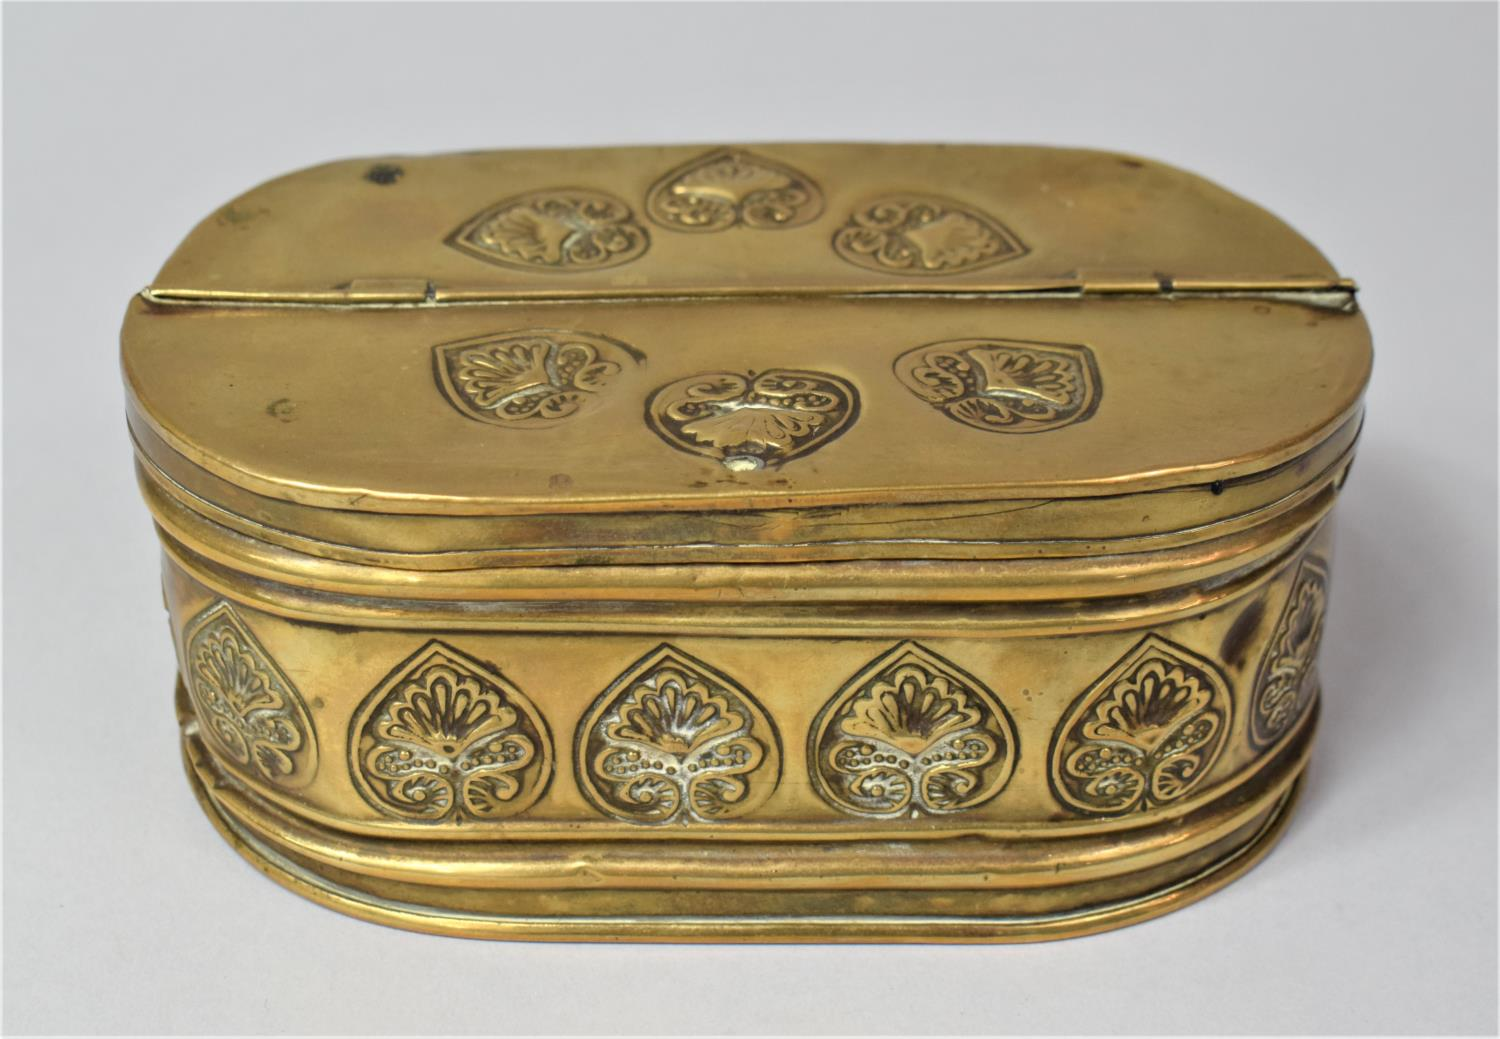 A 19th Century Dutch Brass Oval Two Division Tobacco Box with Hinged Lid, 15.5cm Long